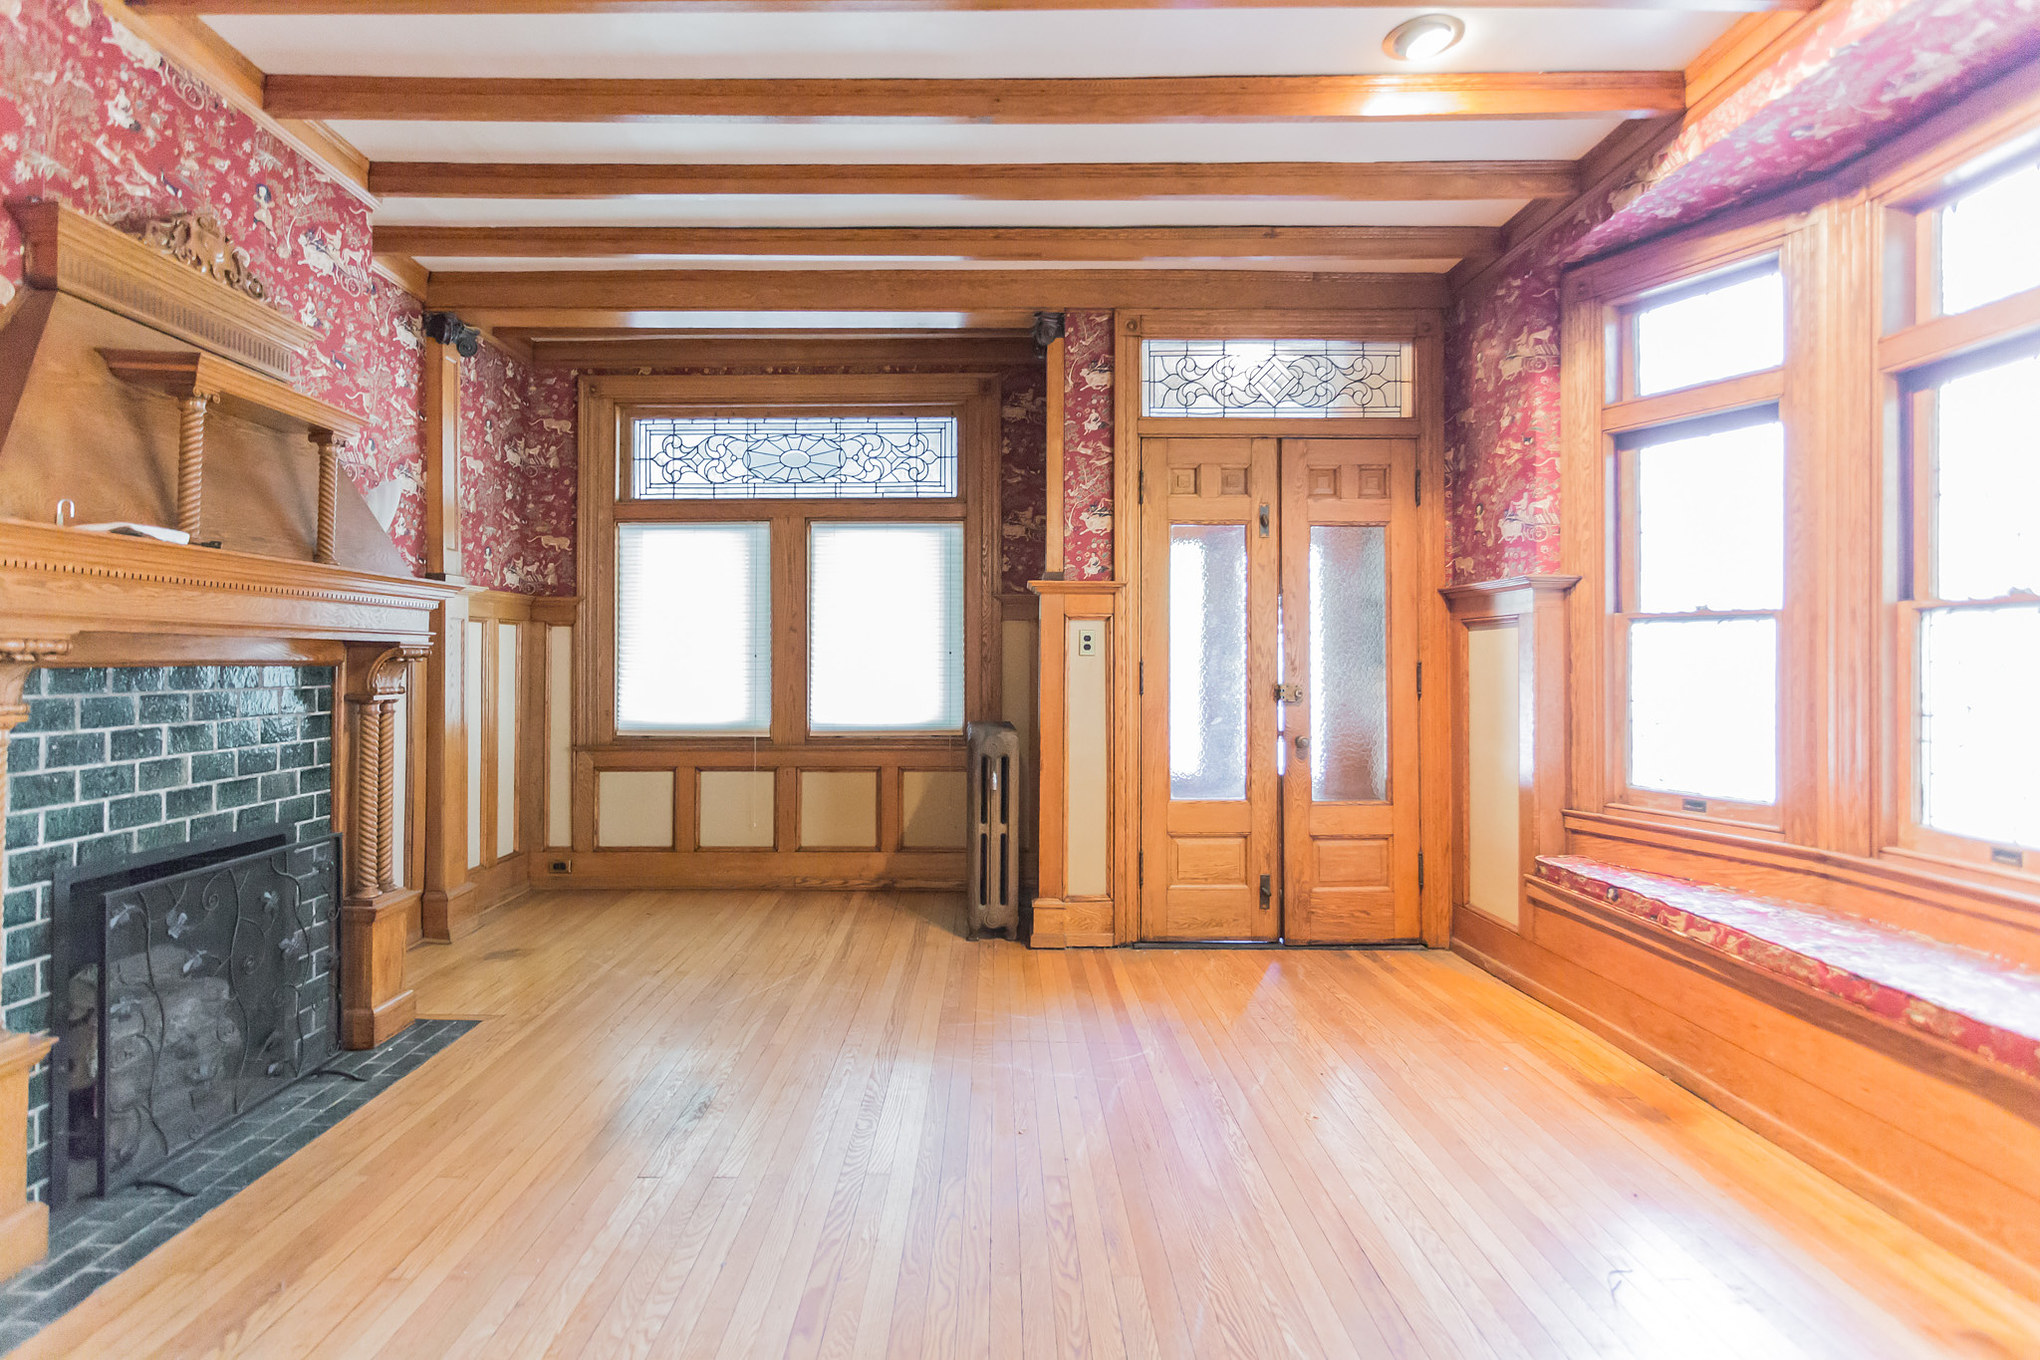 The foyer of a Victorian home with exposed beams, hardwoods, stained glass windows, a fireplace, and original woodwork.